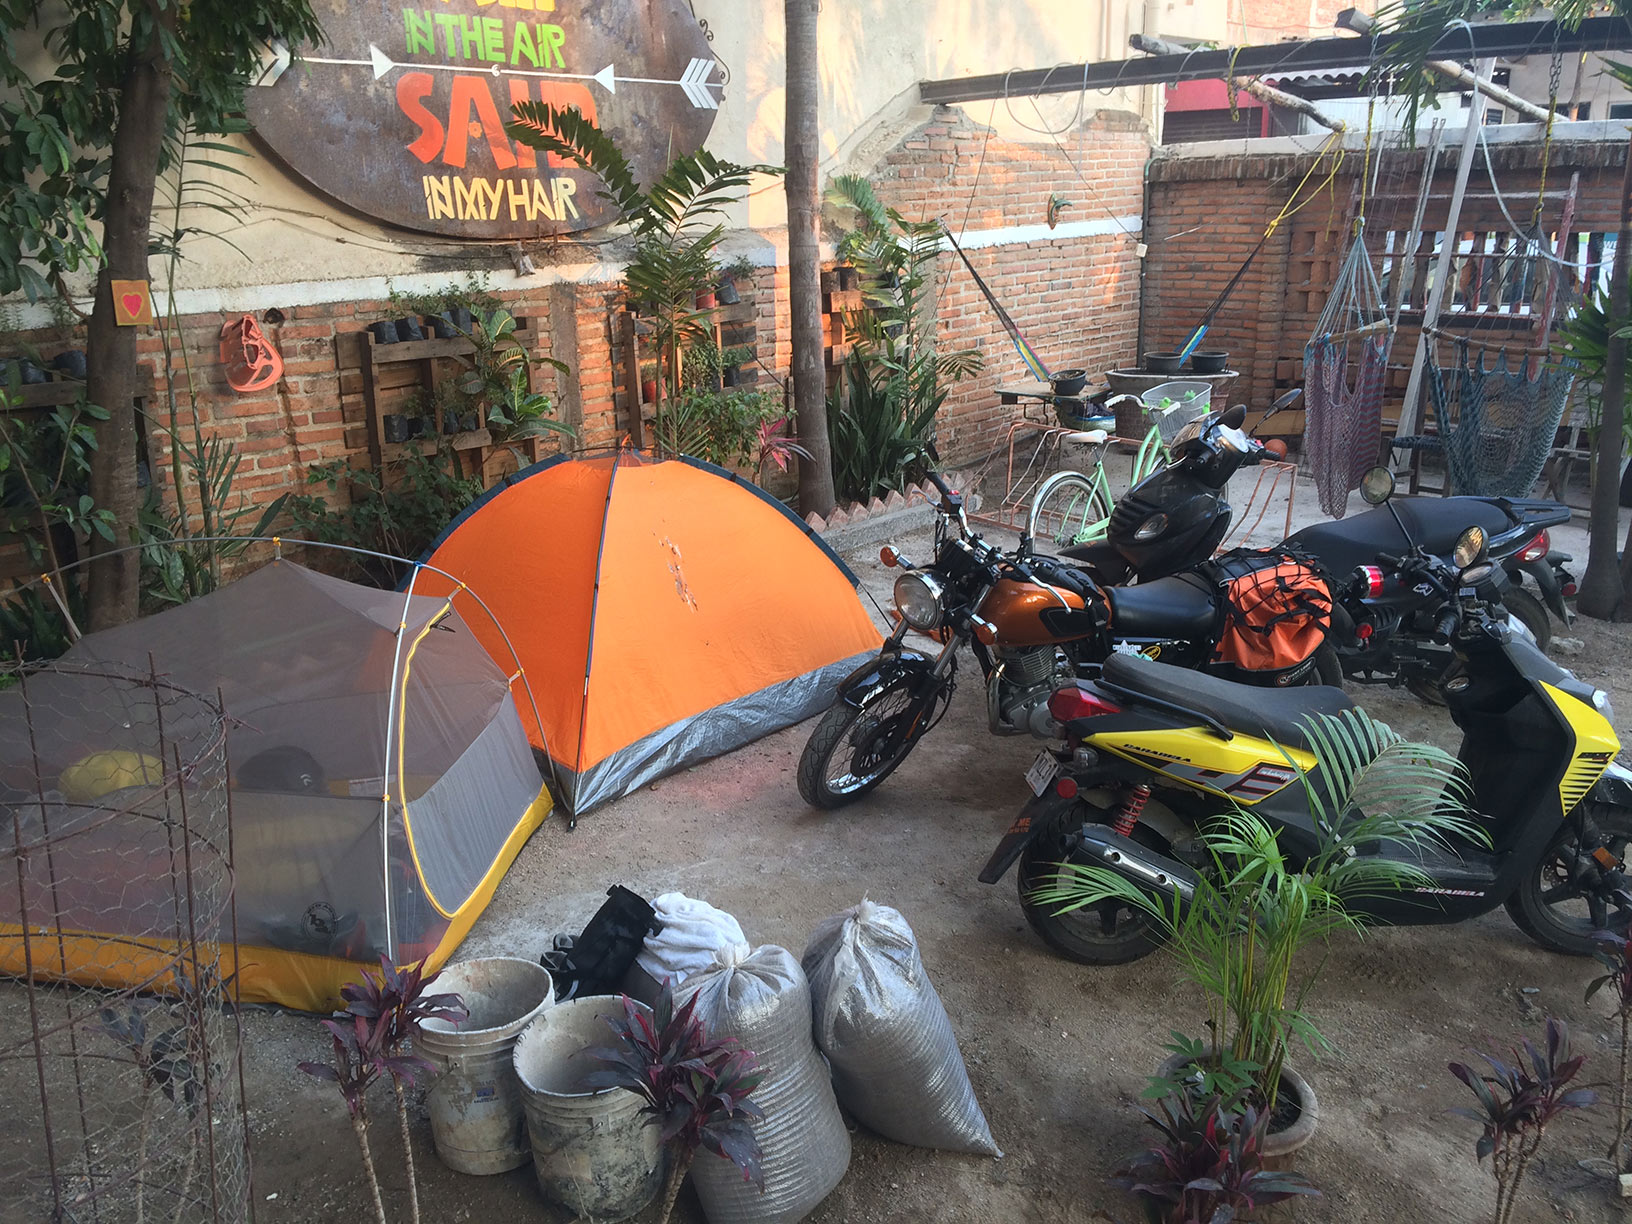 Camping in the LaRedonda Hostel front yard.